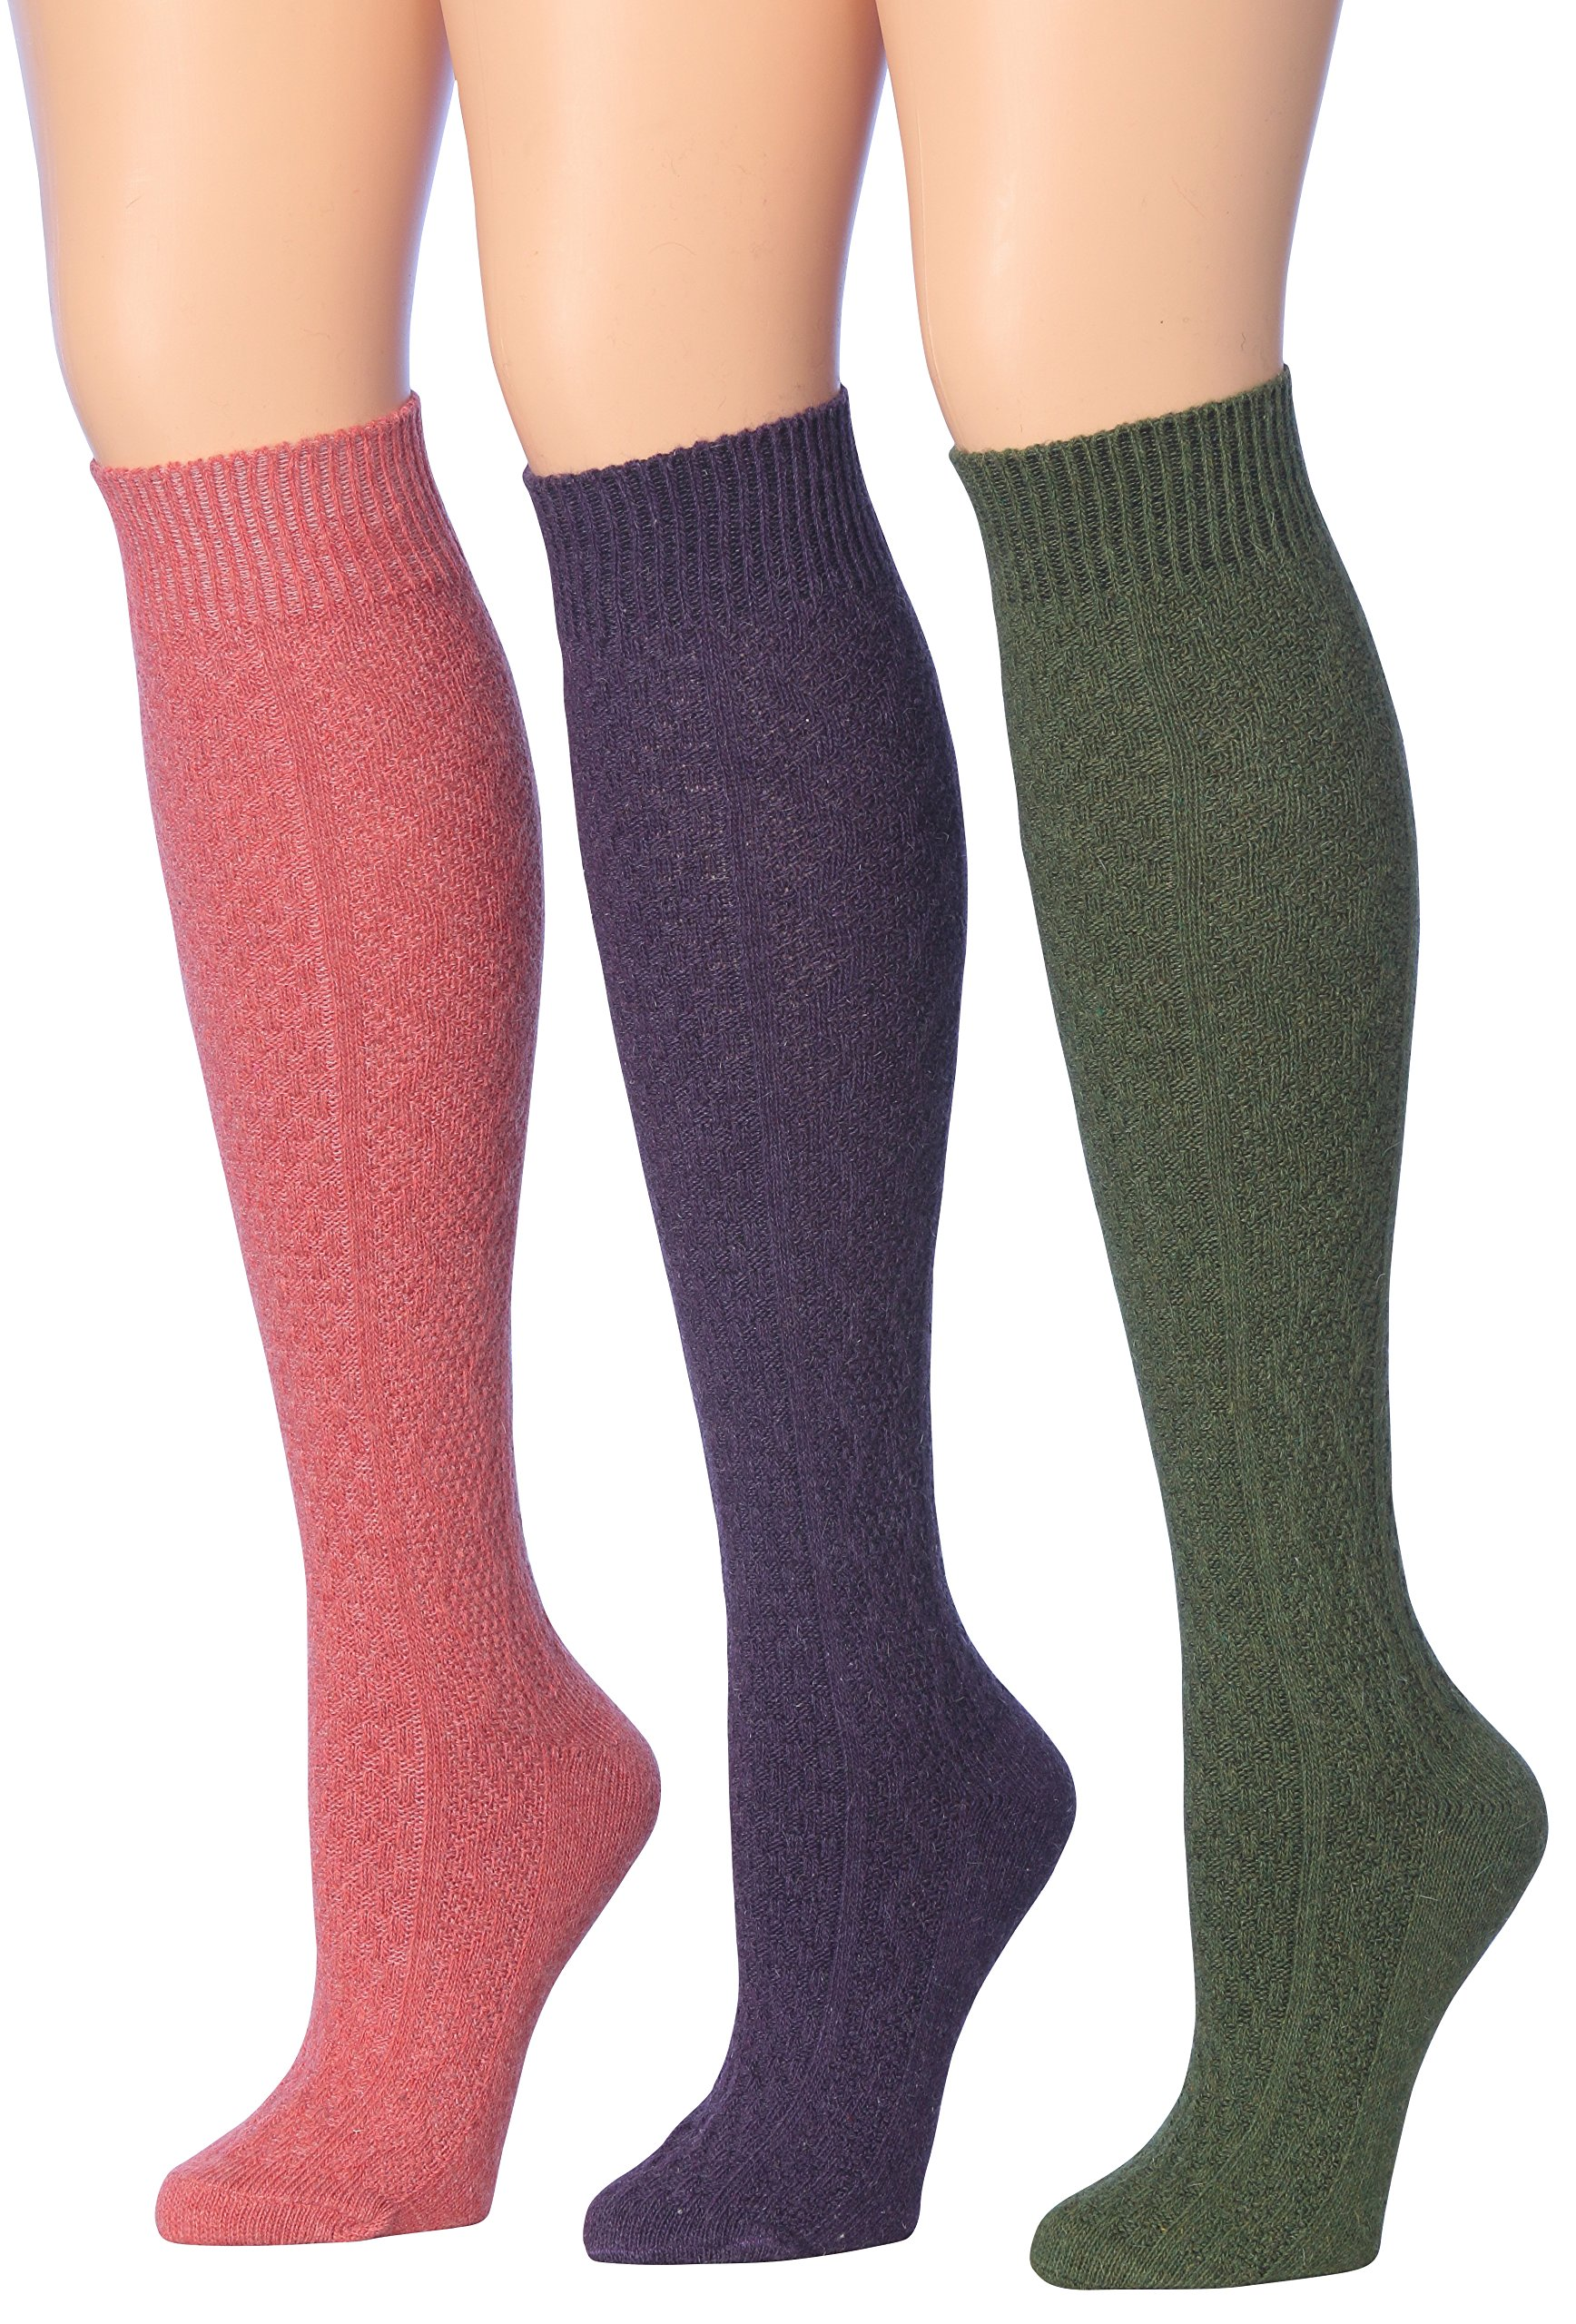 Tipi Toe Women's 3-Pairs Ragg Marled Argyle Knee High Wool-Blend Boot Socks, (sock size 9-11) Fits shoe size 6-9, WK01-D